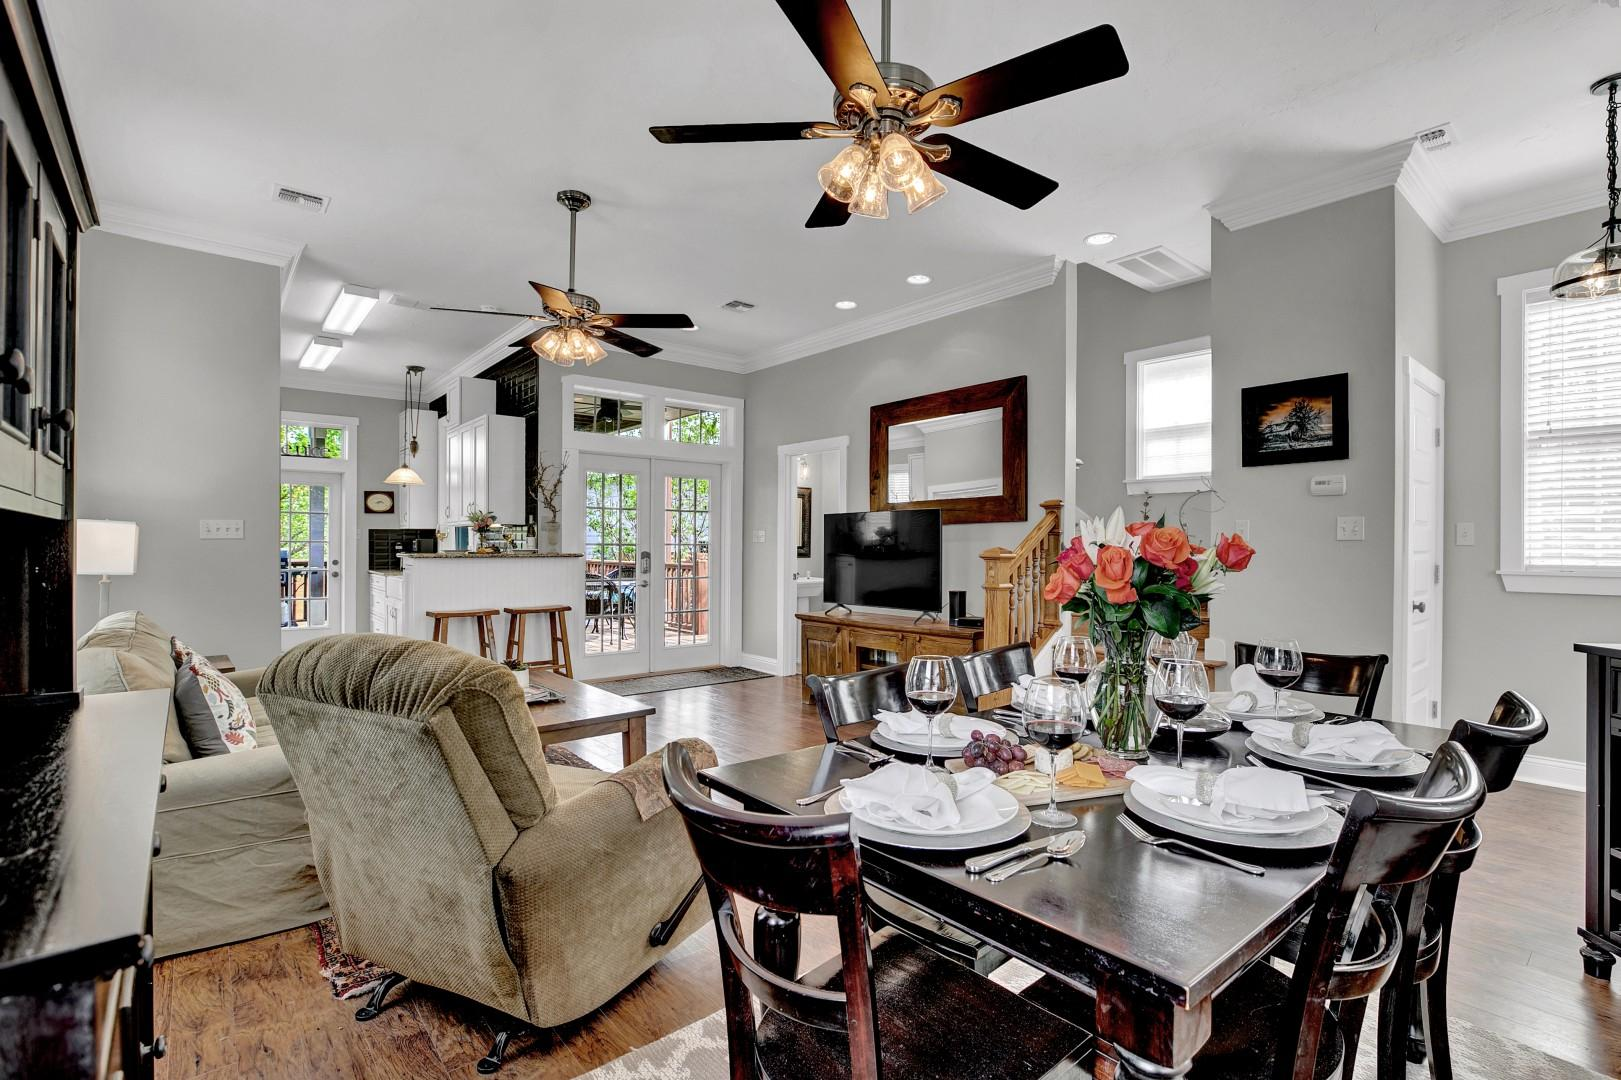 NEW! Upscale Home on 1-acre w/Fire Pit & Grill